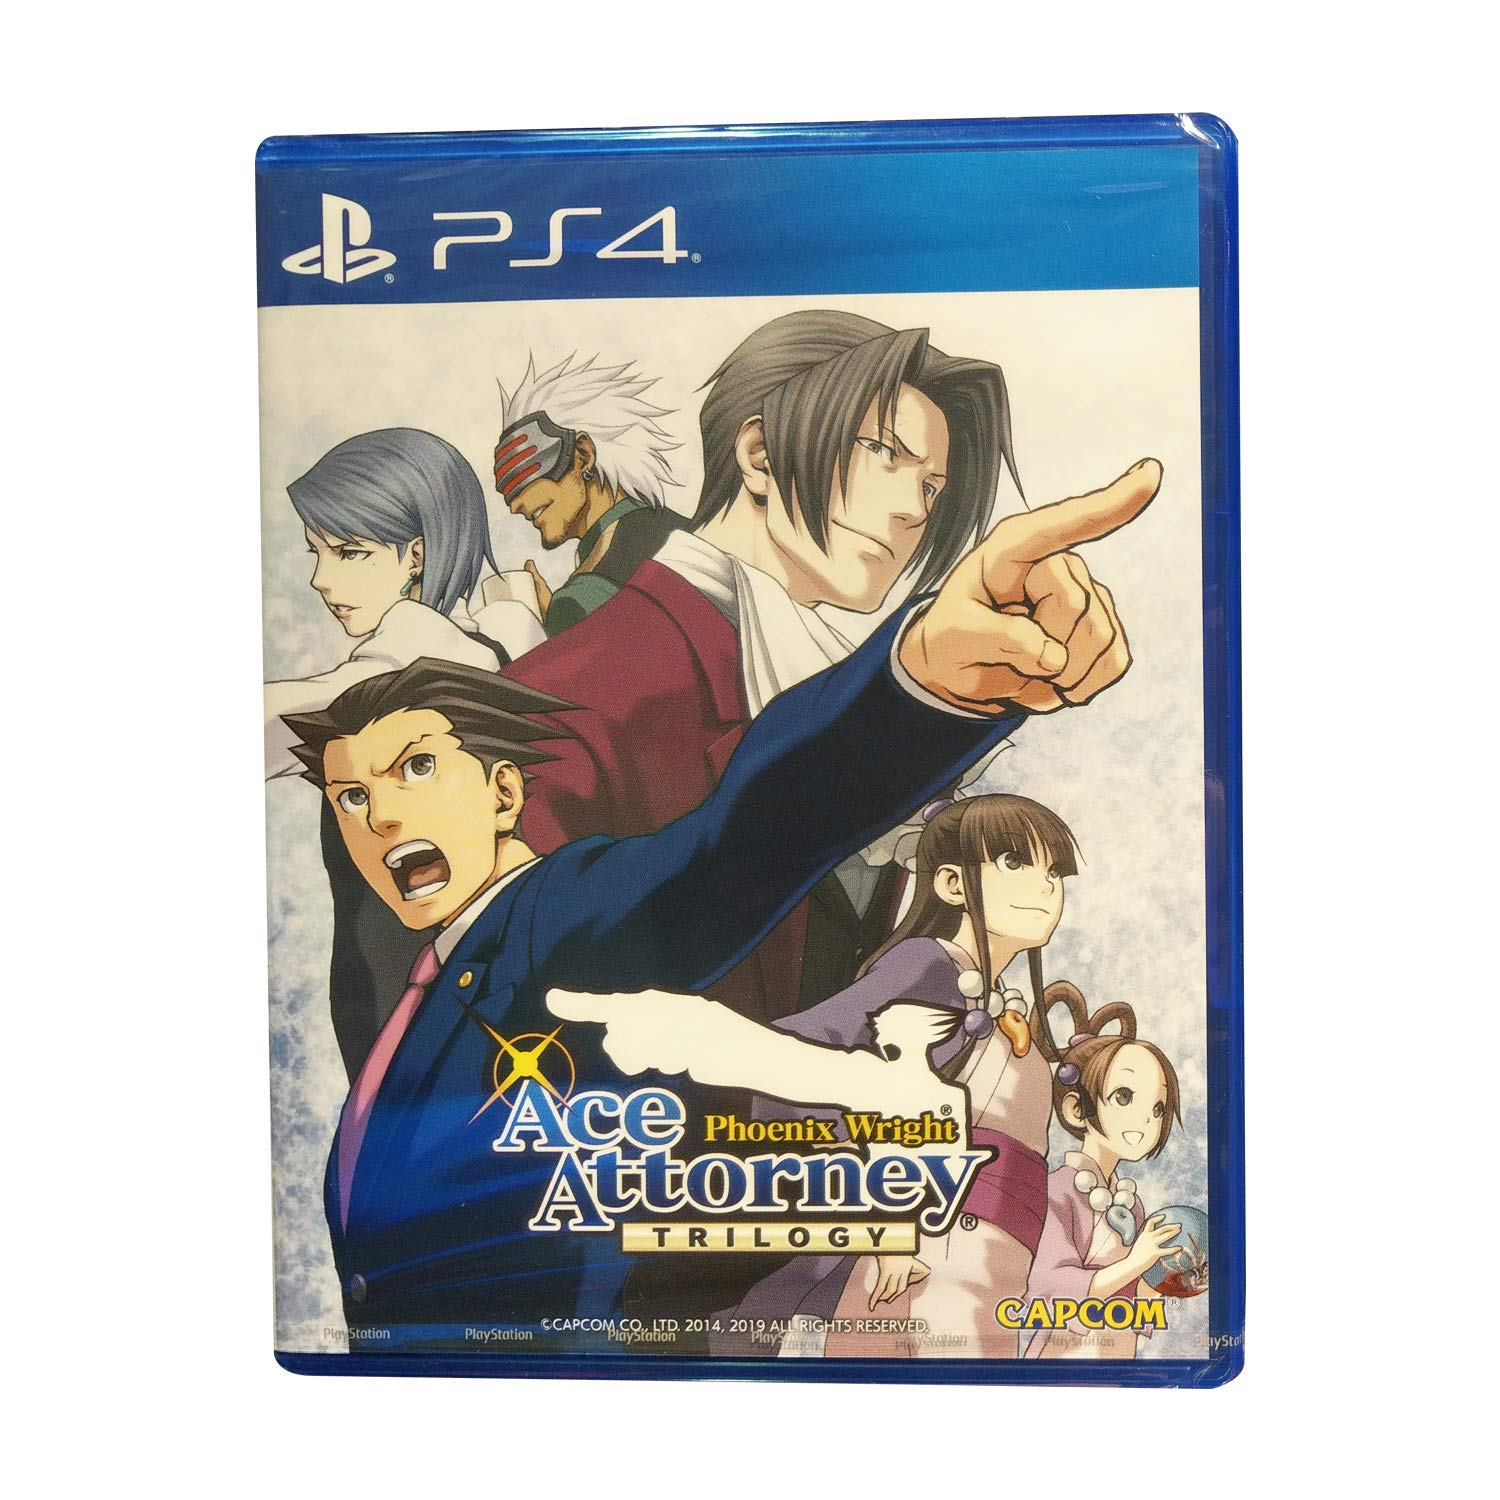 PS4 Phoenix Wright Ace Attorney Trilogy (English Subs) for PlayStation 4